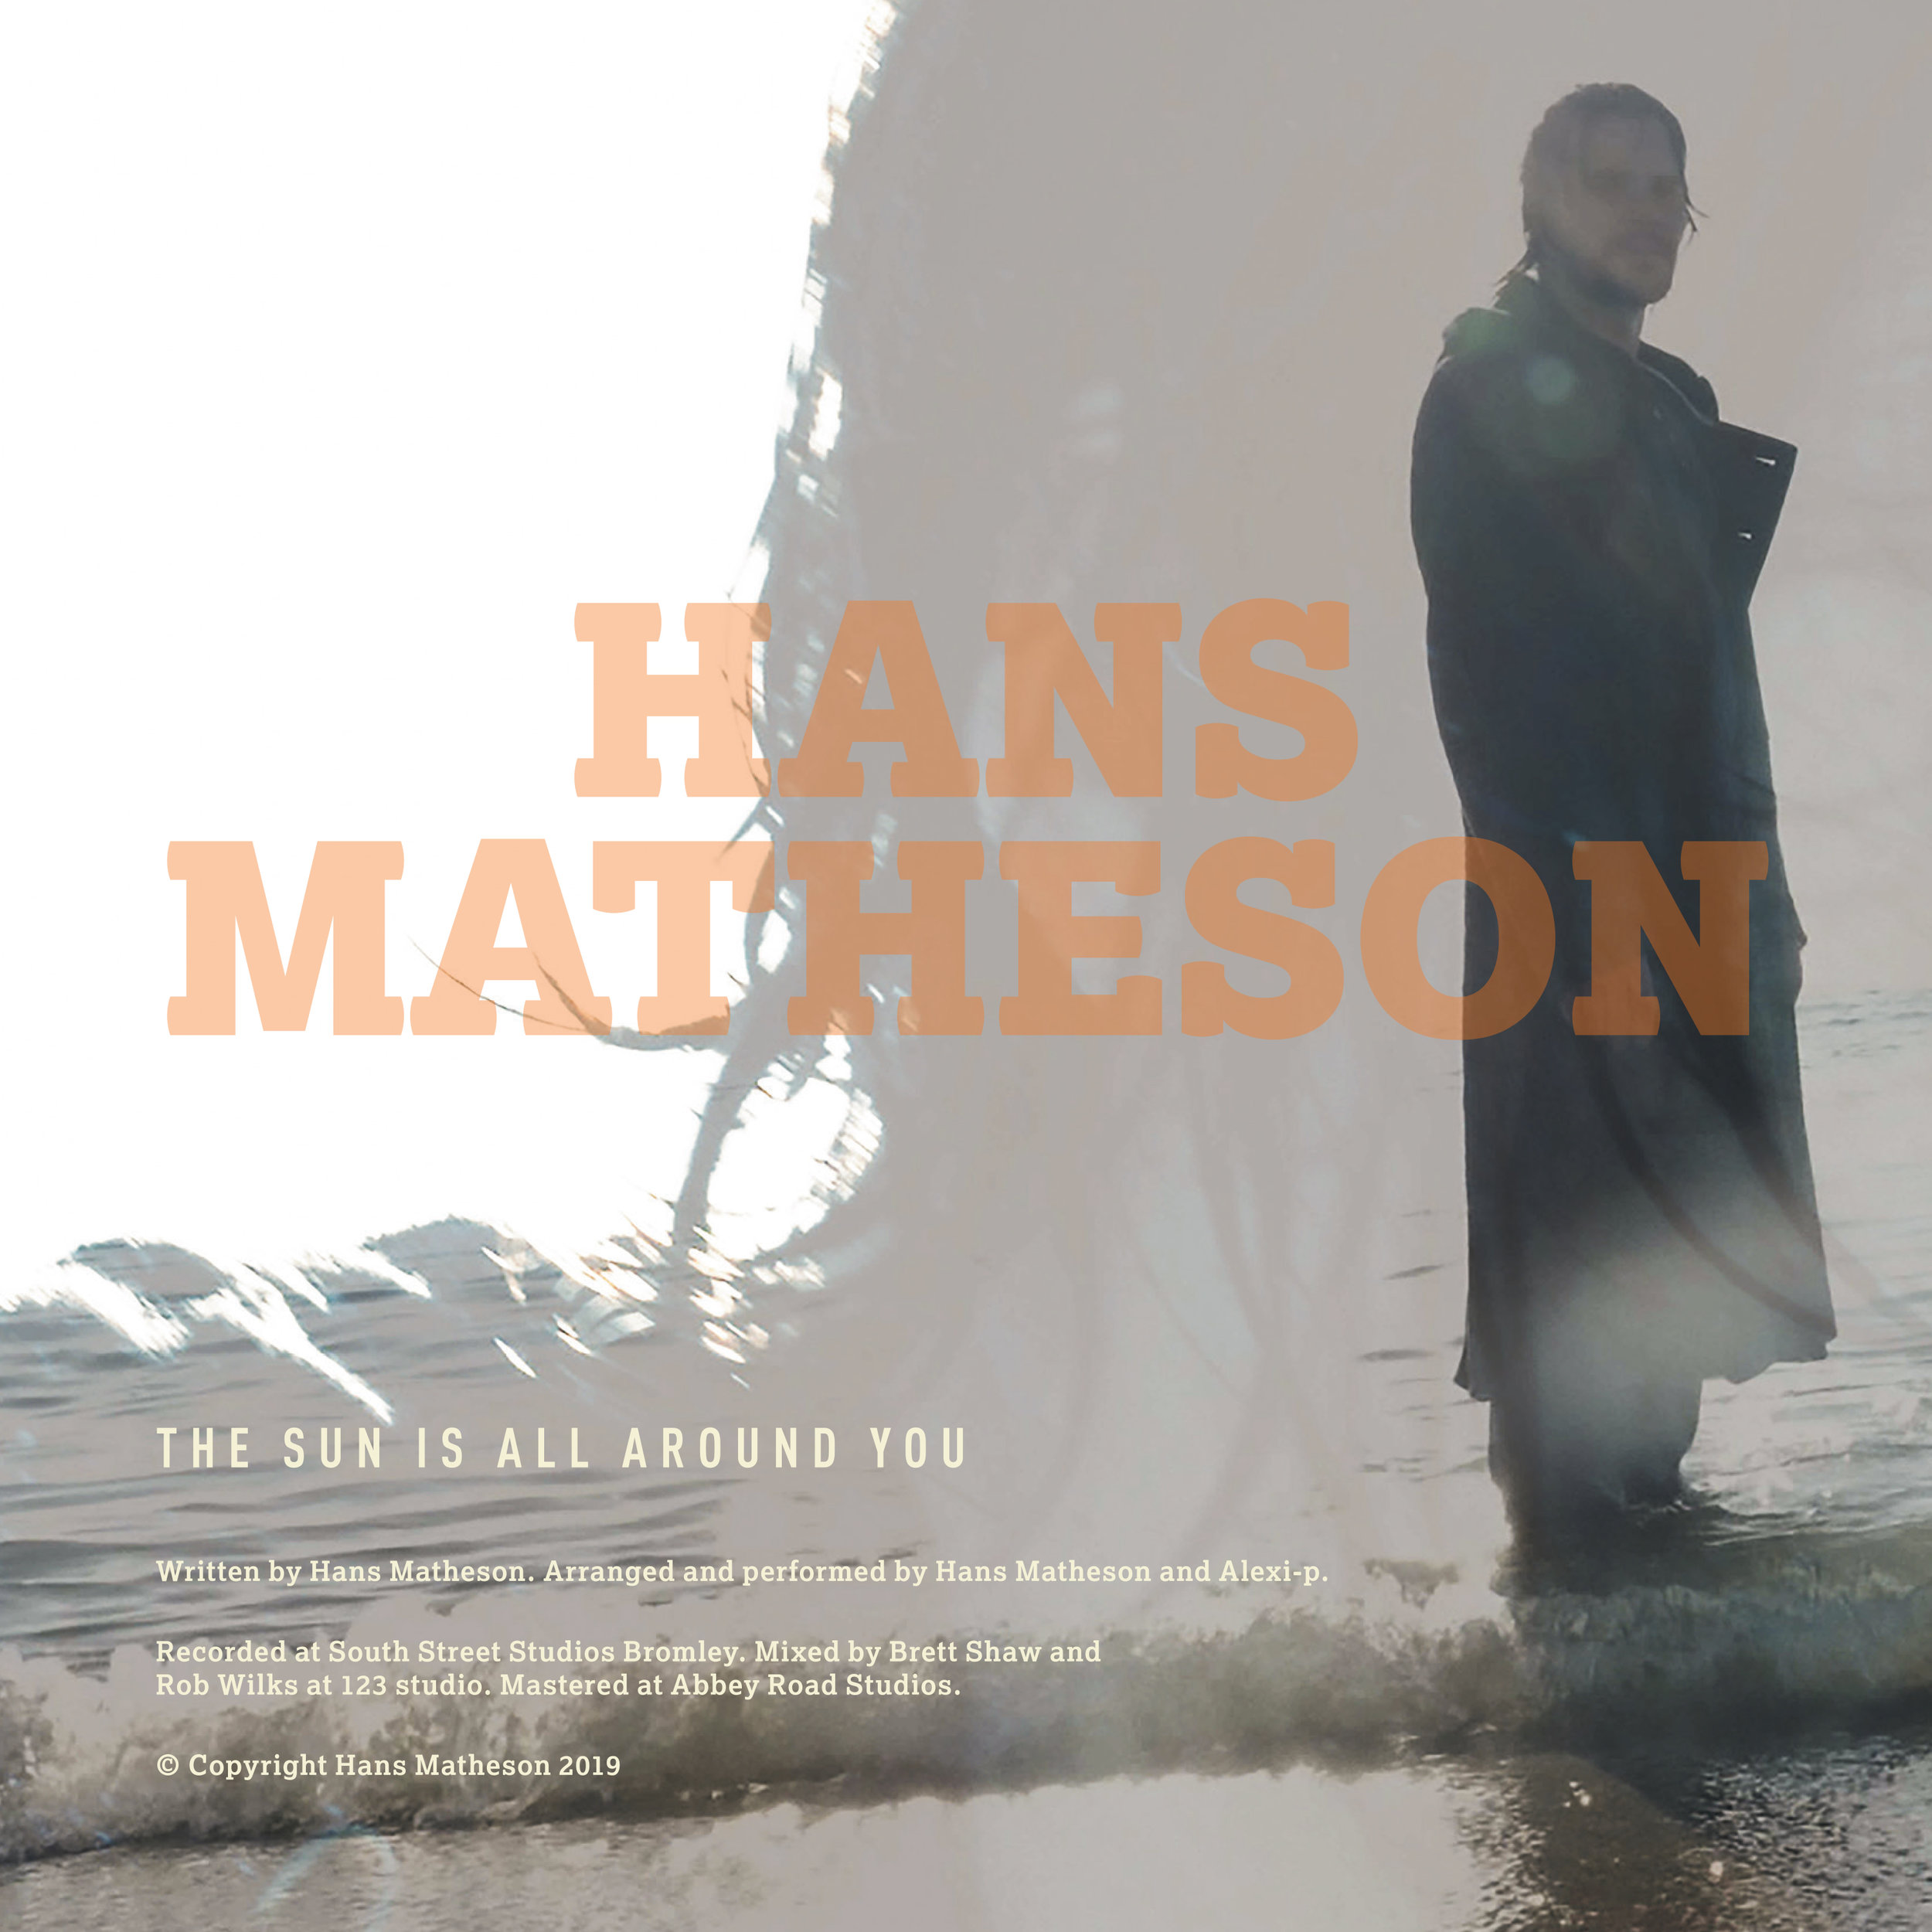 Hans Matheson - The Sun Is All Around You - Songcast cover image.jpg